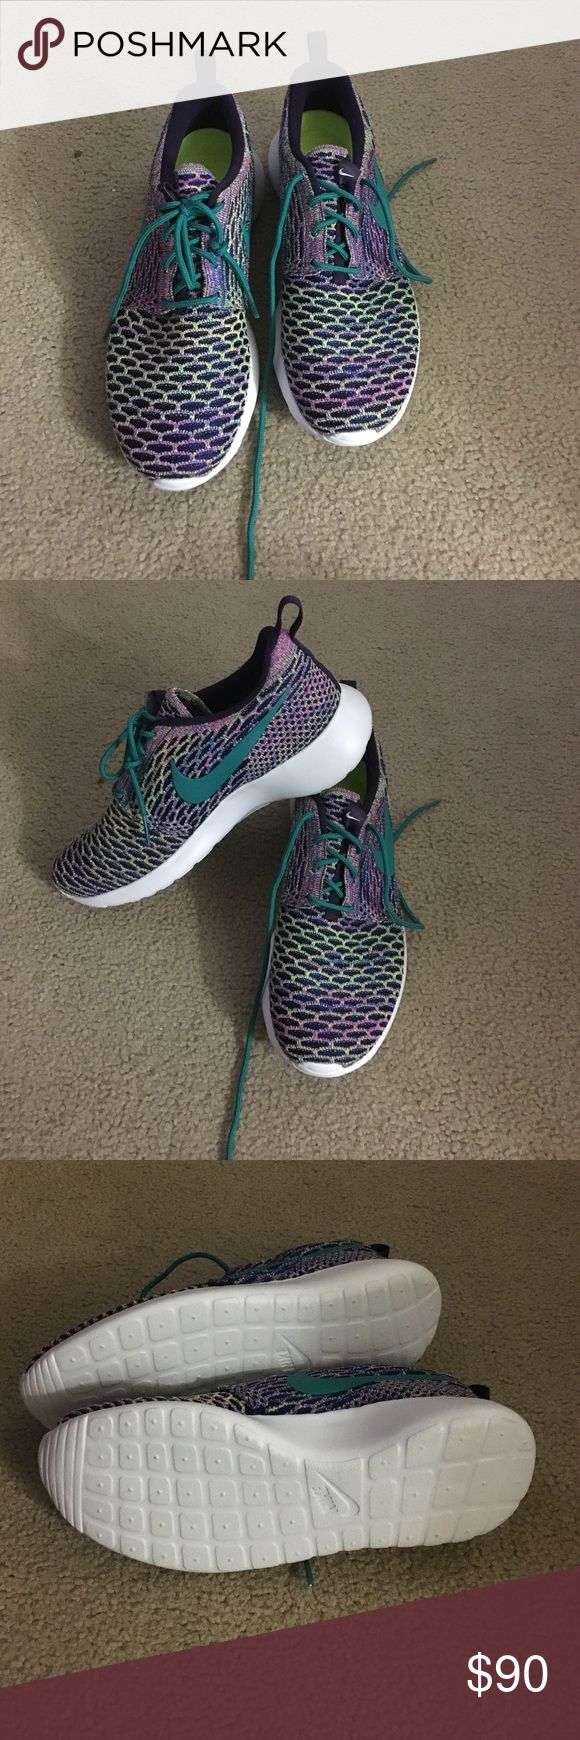 NEVER WORN Nike ID NEVER WORN Nike ID tennis shoes! Purple with neon, turquoise, and lime green accents. I think they look like mermaid scales ;) I bought them on here but they're too big for me! They say they're a size 7.5 but they fit more like an 8 or 8.5. Nike Shoes Athletic Shoes